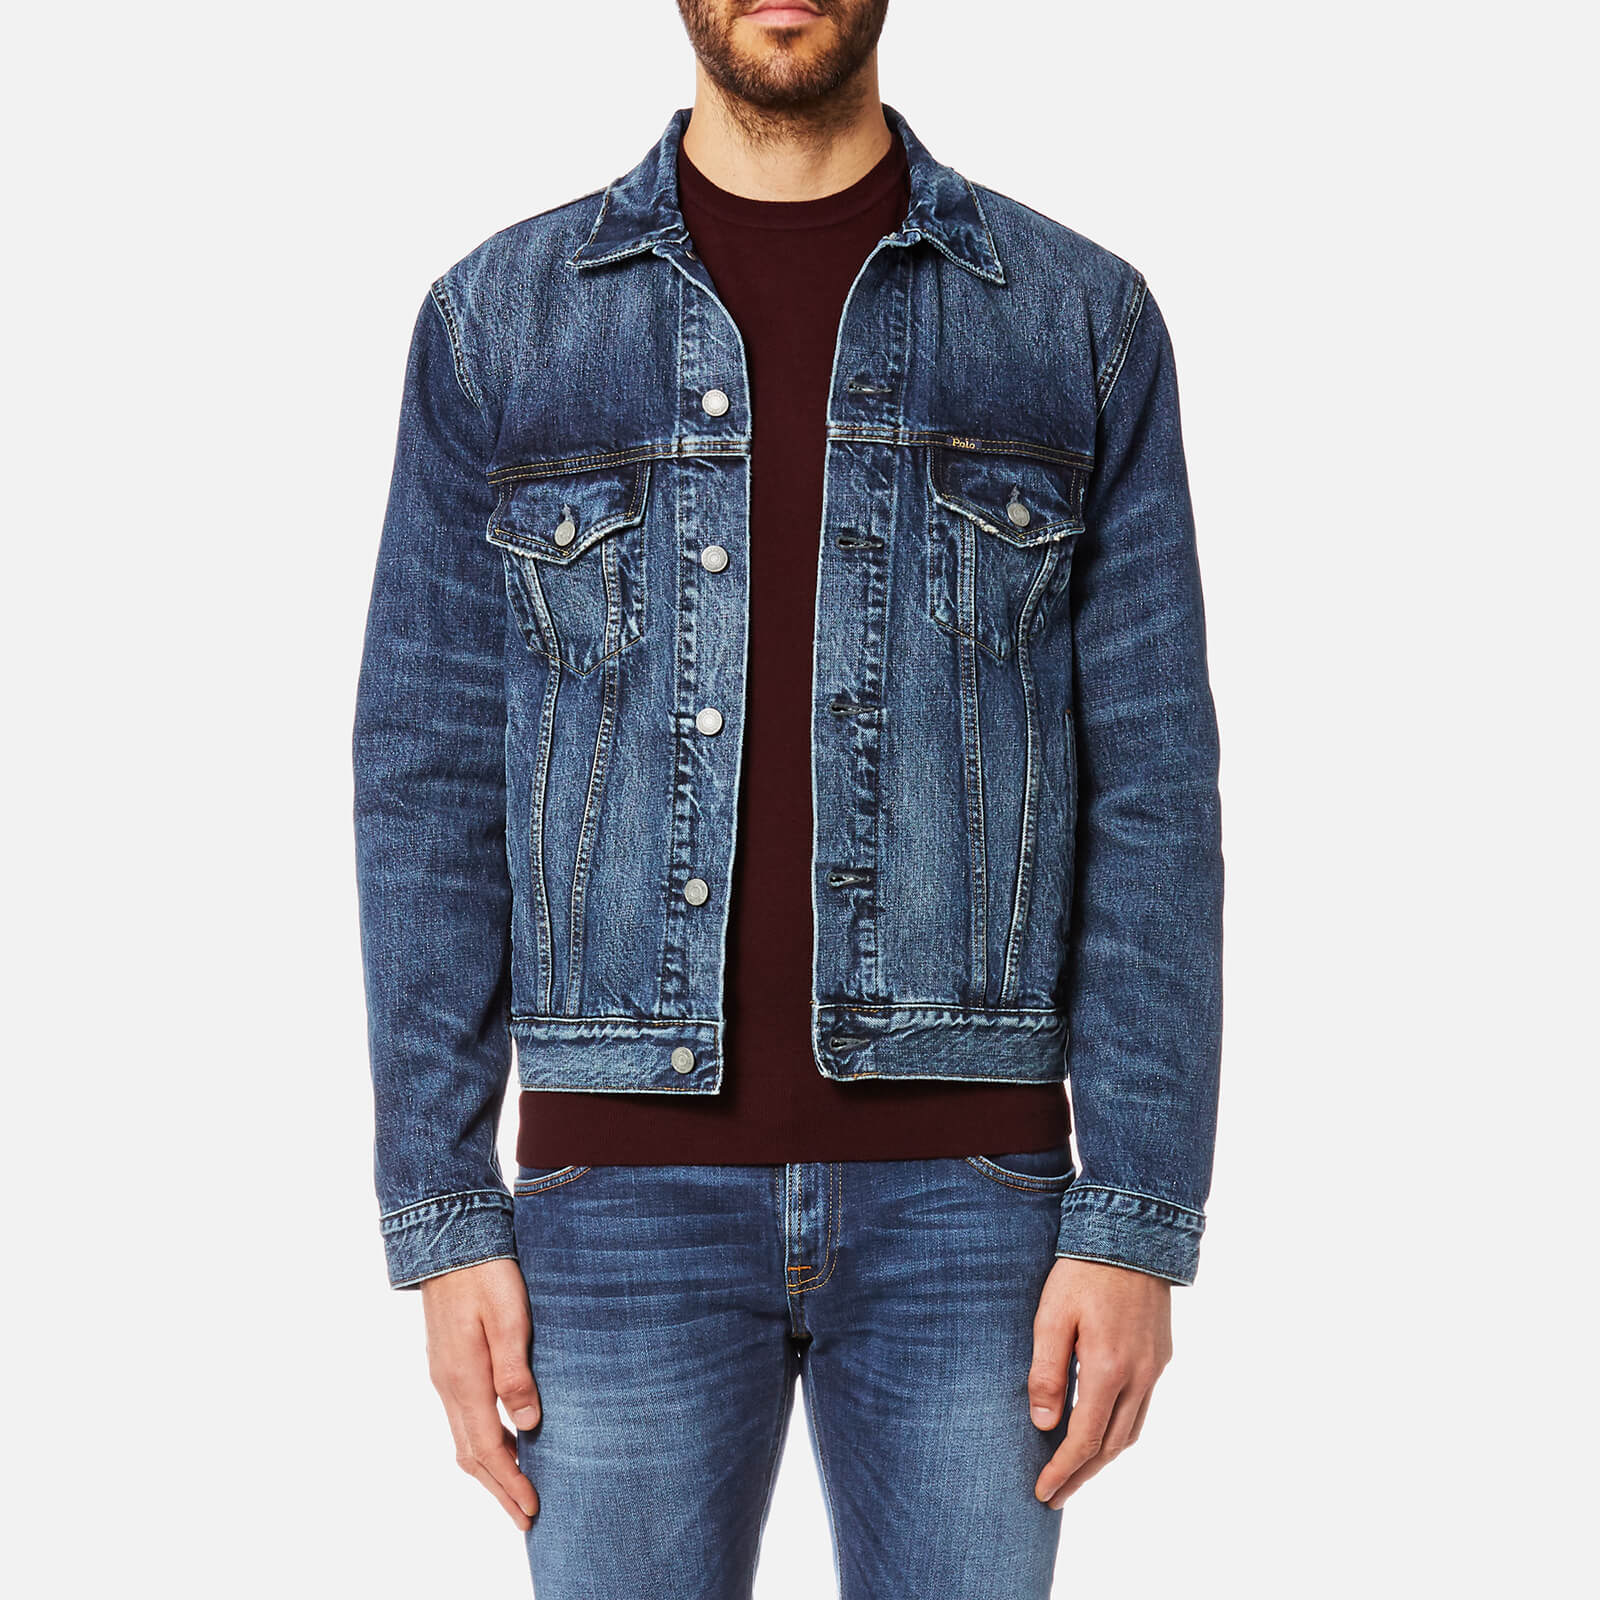 80ec49076cb Polo Ralph Lauren Men s Icon Denim Trucker Jacket - Trenton - Free UK  Delivery over £50